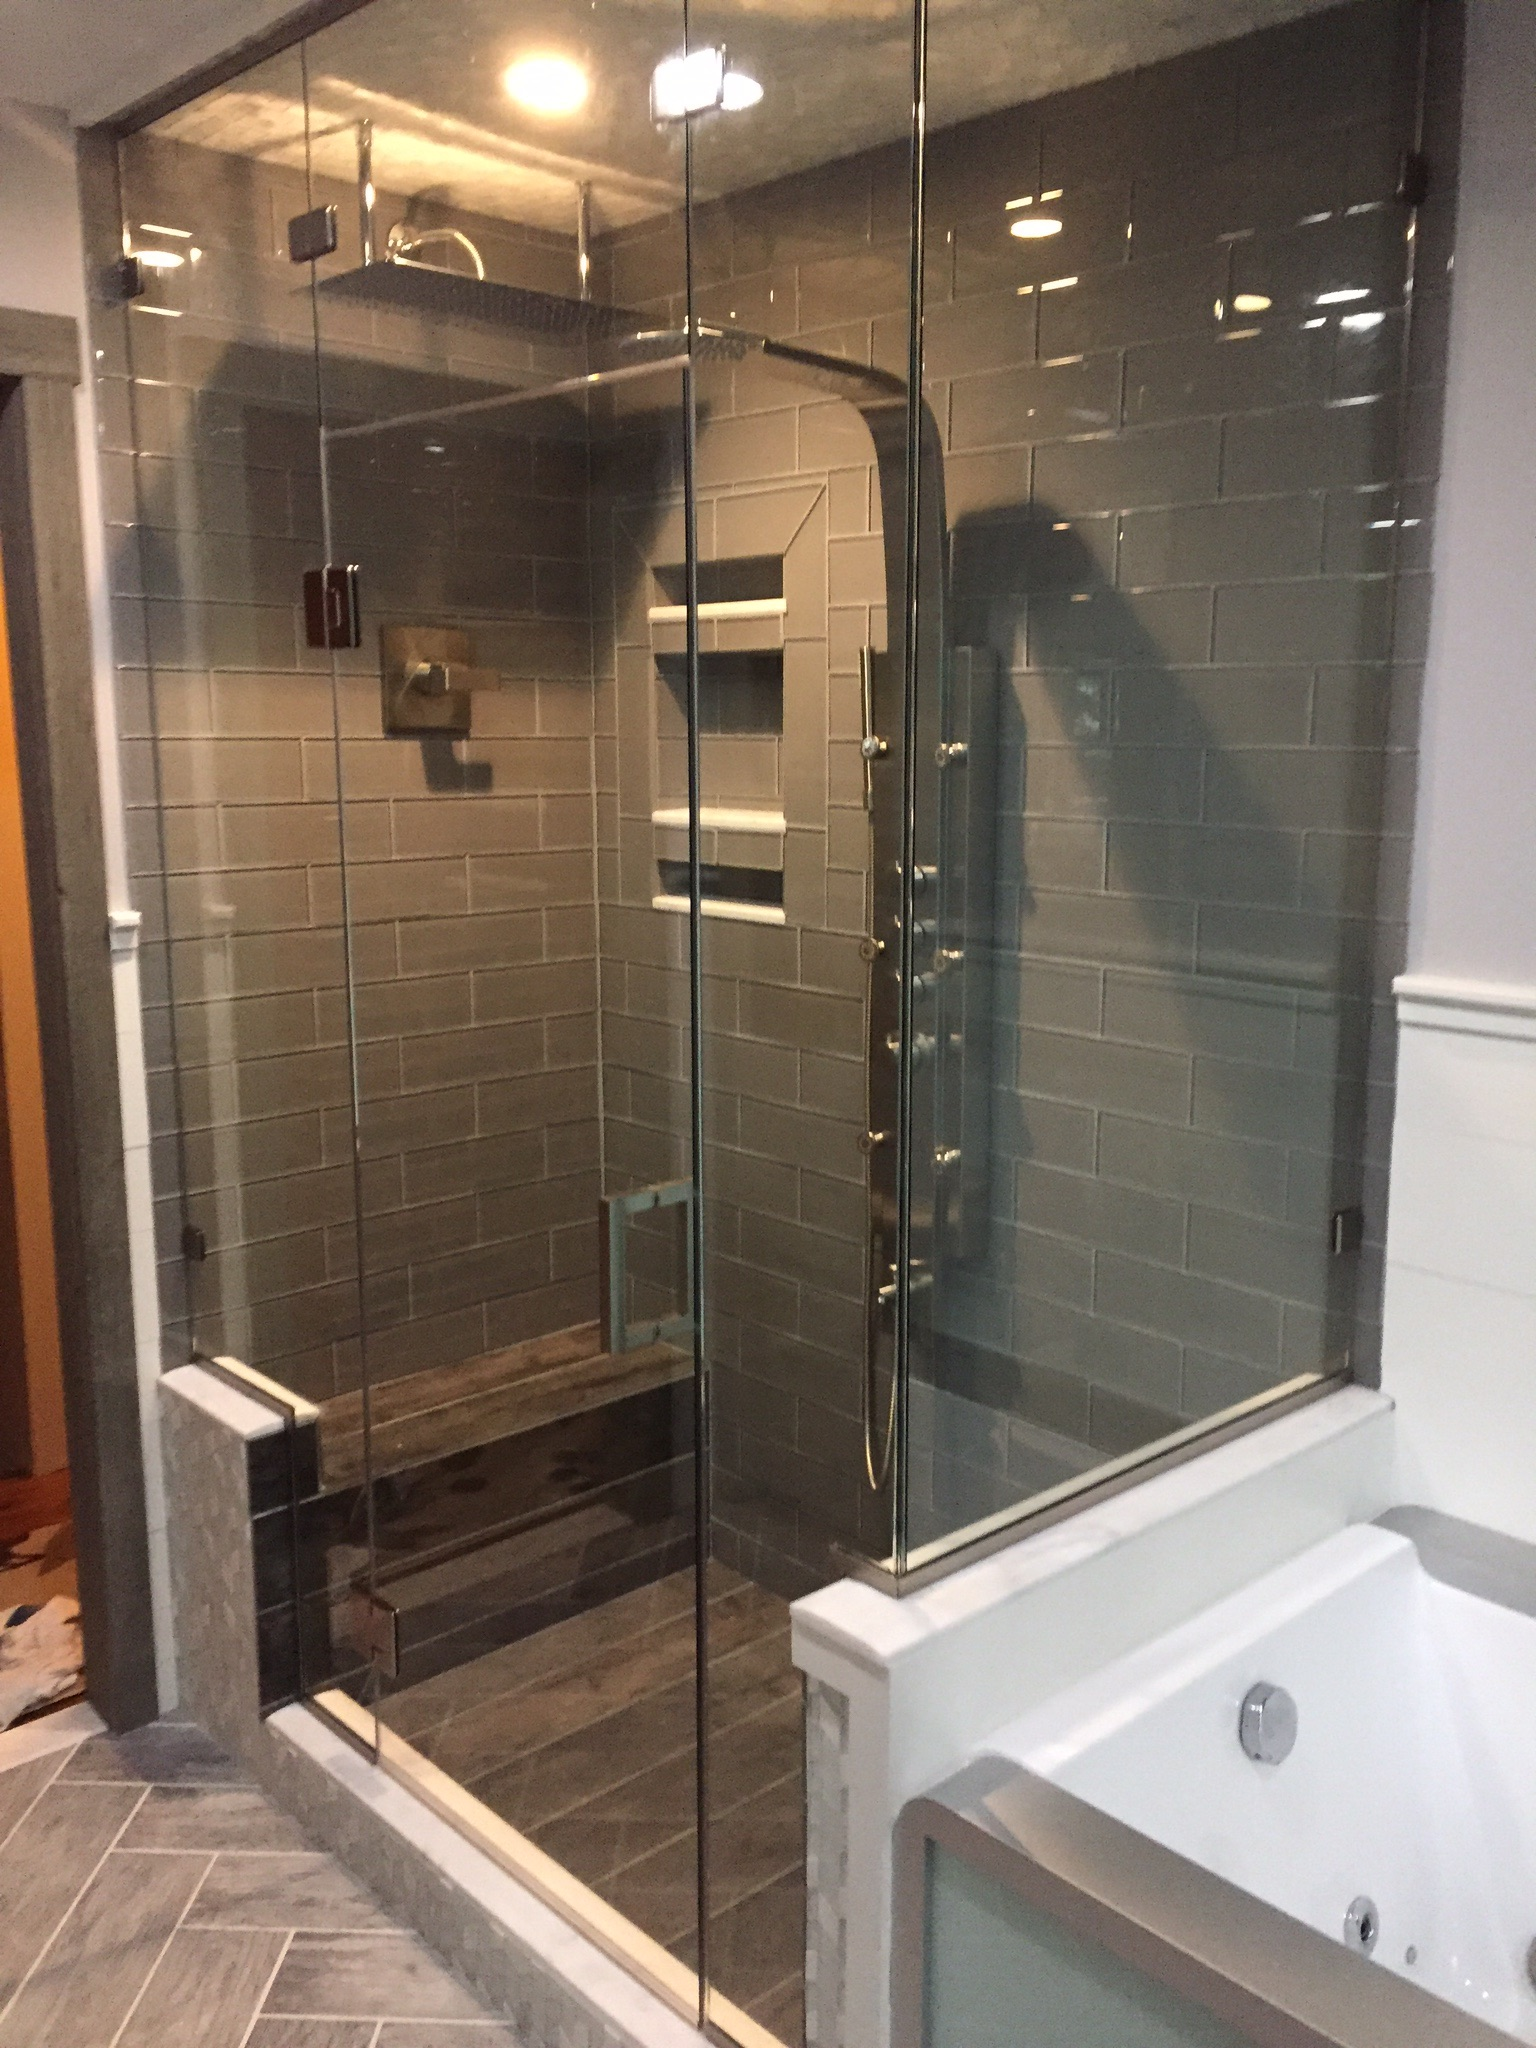 Twin City Auto >> Shower Doors and Enclosures - Twin Bay Glass - Traverse City Michigan : Twin Bay Glass ...